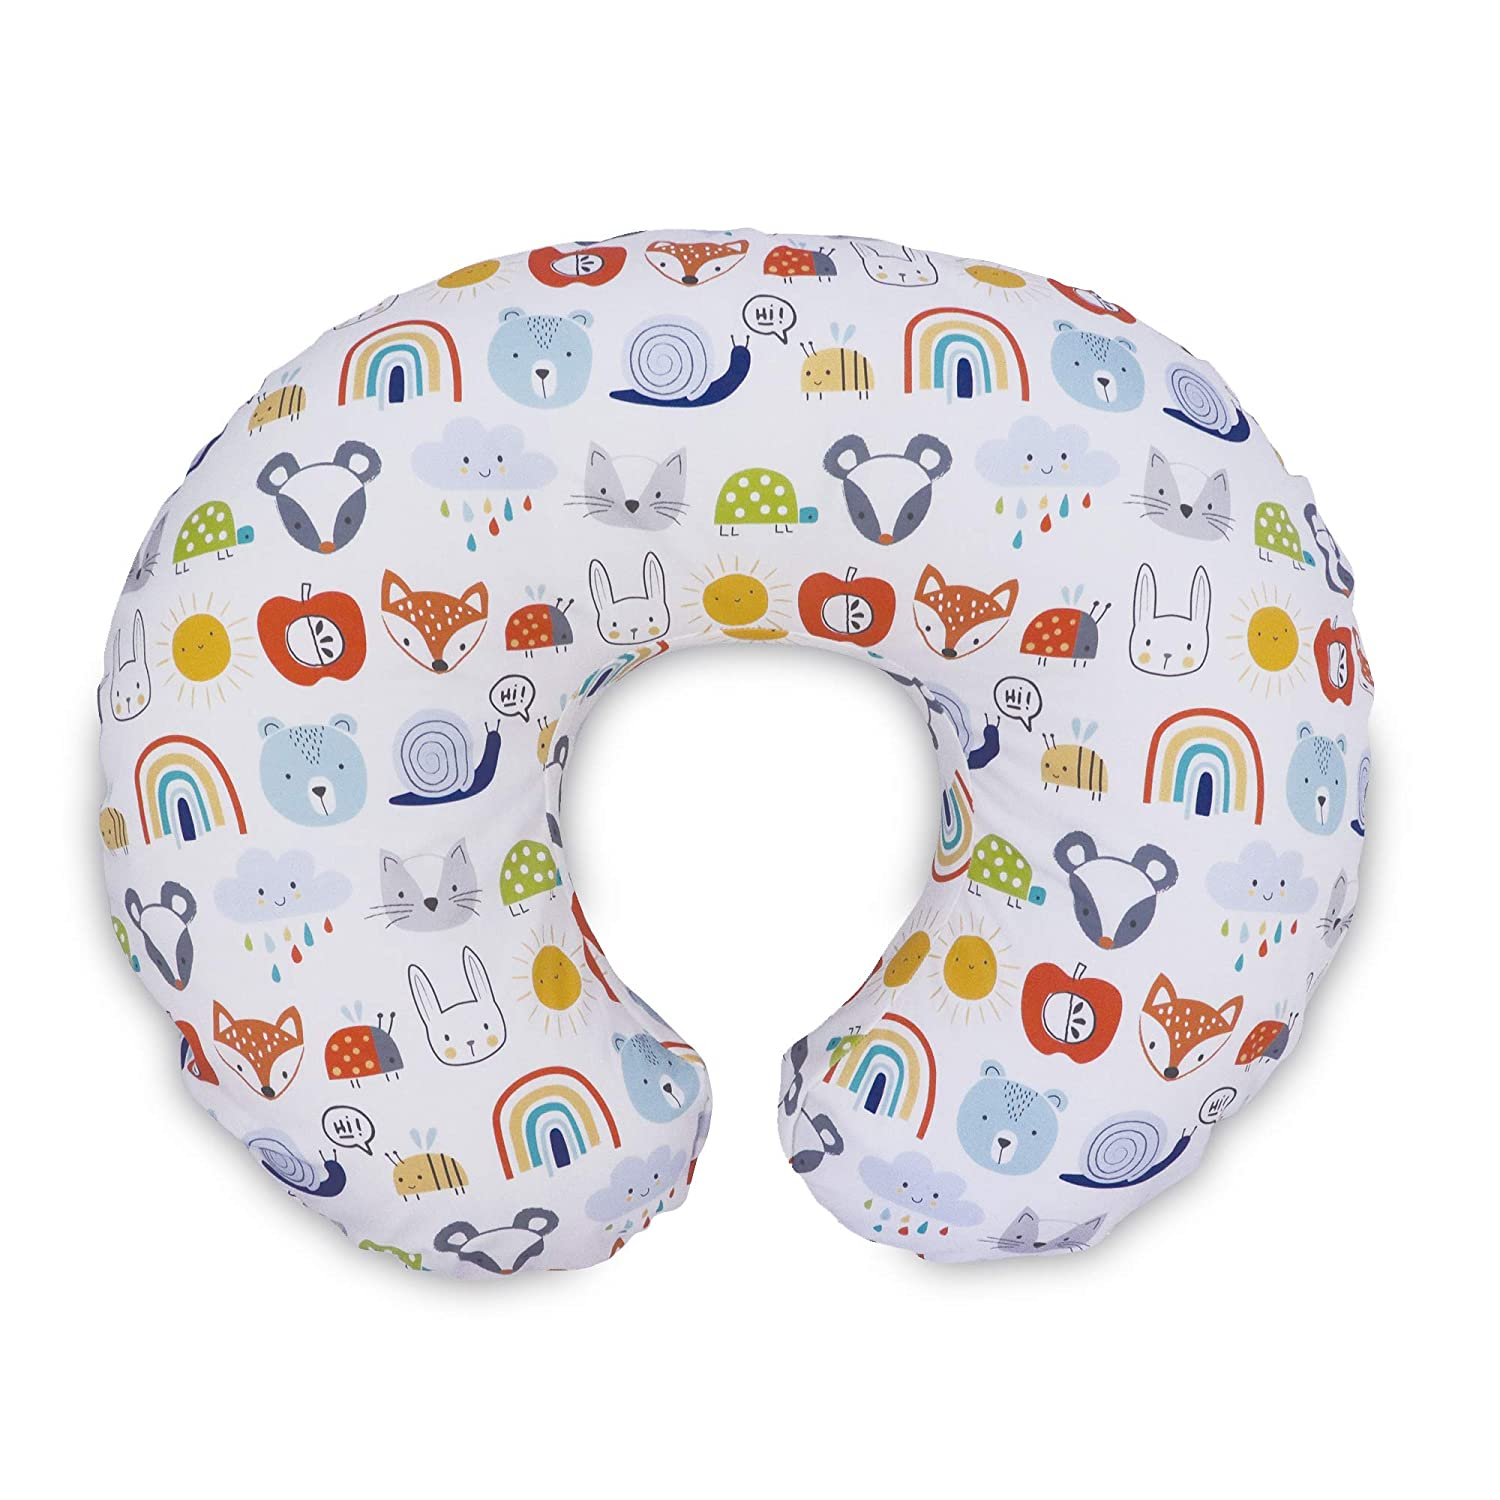 Boppy Original Pillow Cover, Colorful Animals & Rainbows, Cotton Blend Fabric with Allover Fashion, Fits All Nursing Pillows & Positioners, Multi